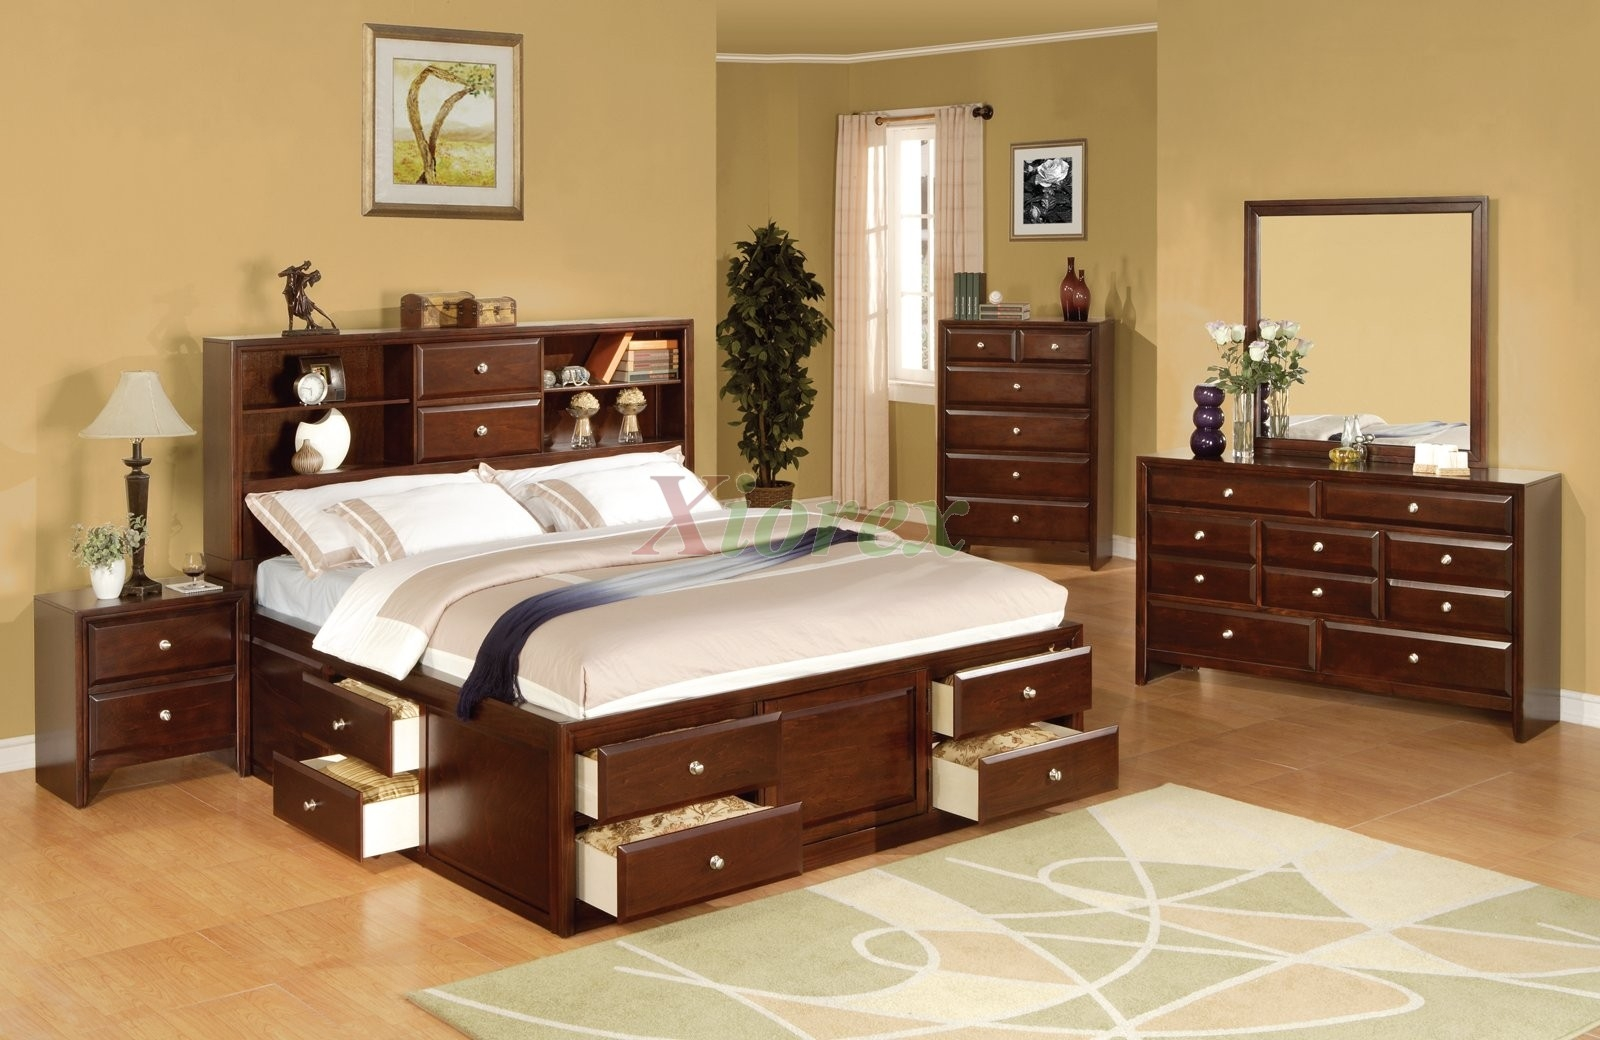 Bedroom Furniture Storage Right View Of White King Single Size Bed Layjao